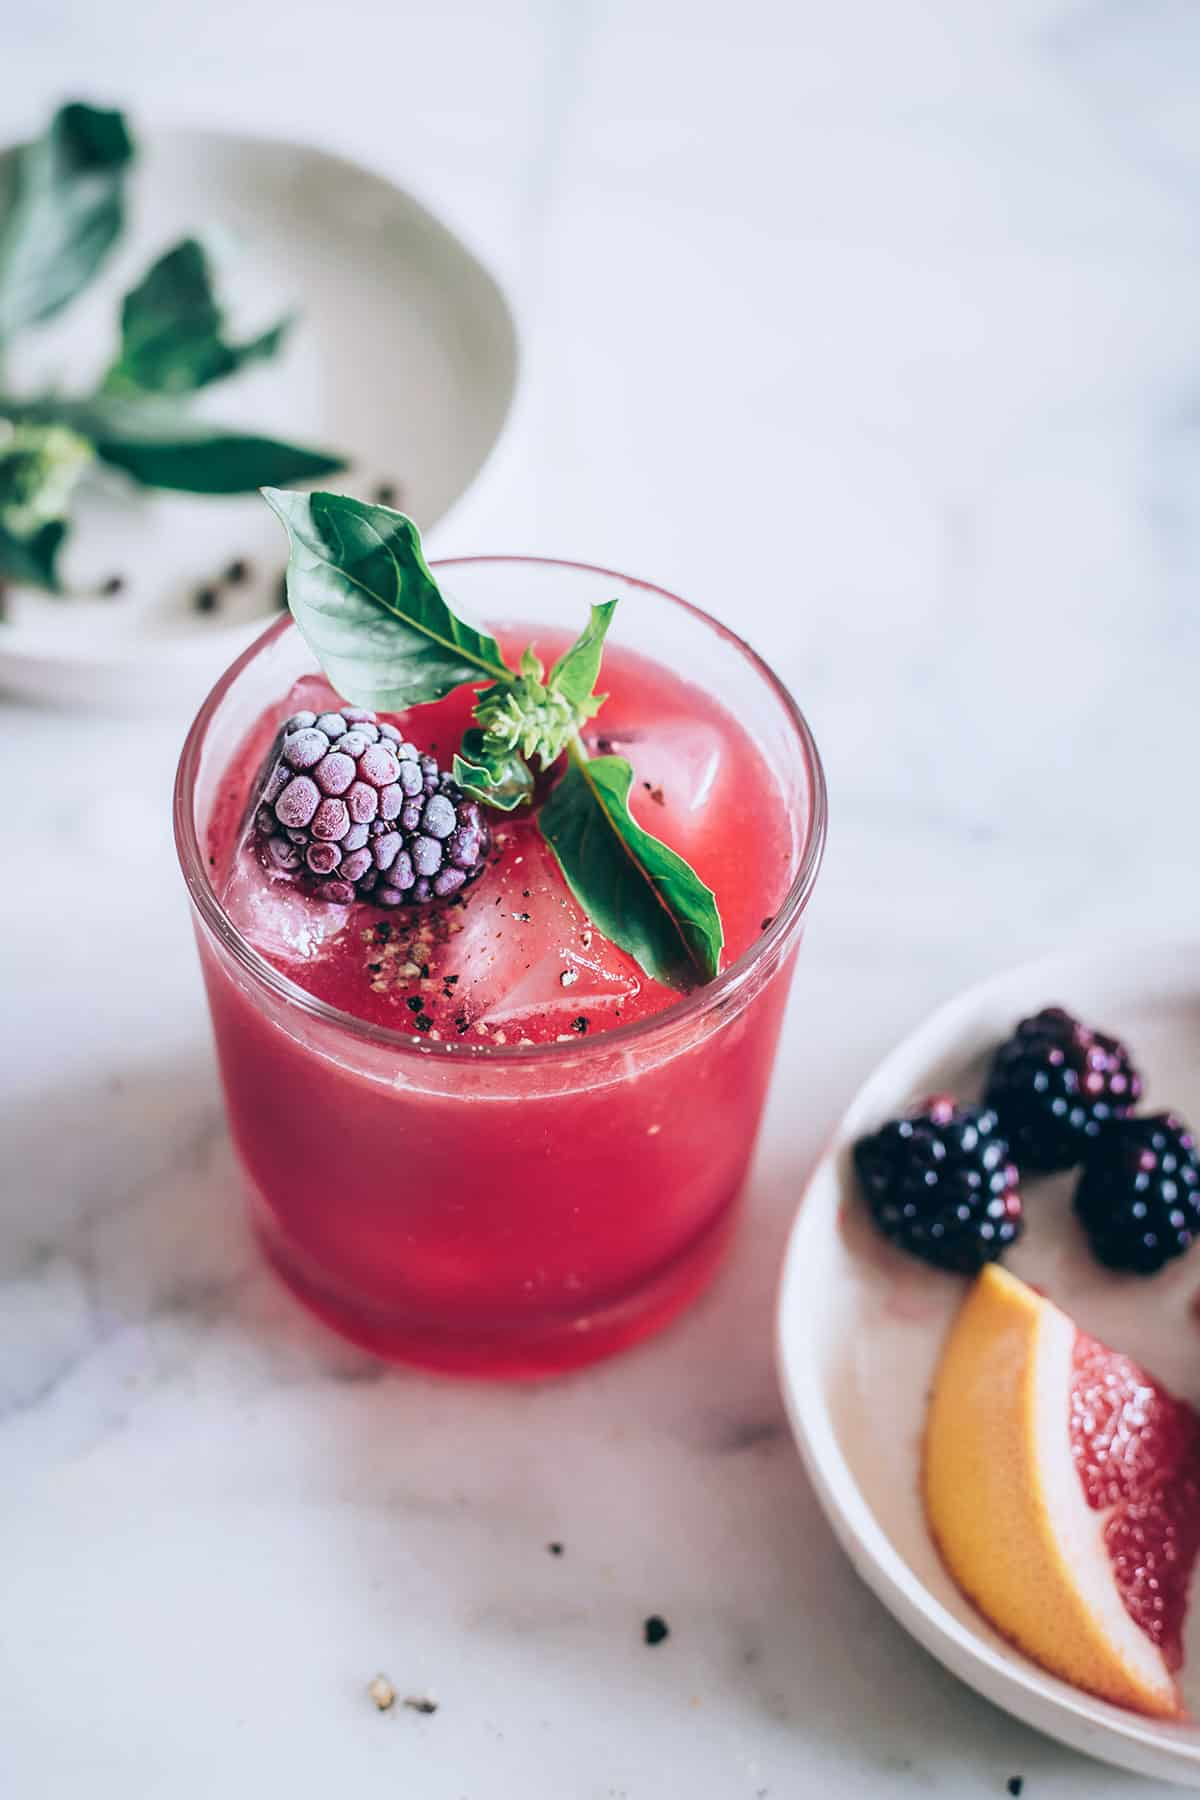 Celebrate the Weekend with a Gorgeous Blackberry Black Pepper Cocktail